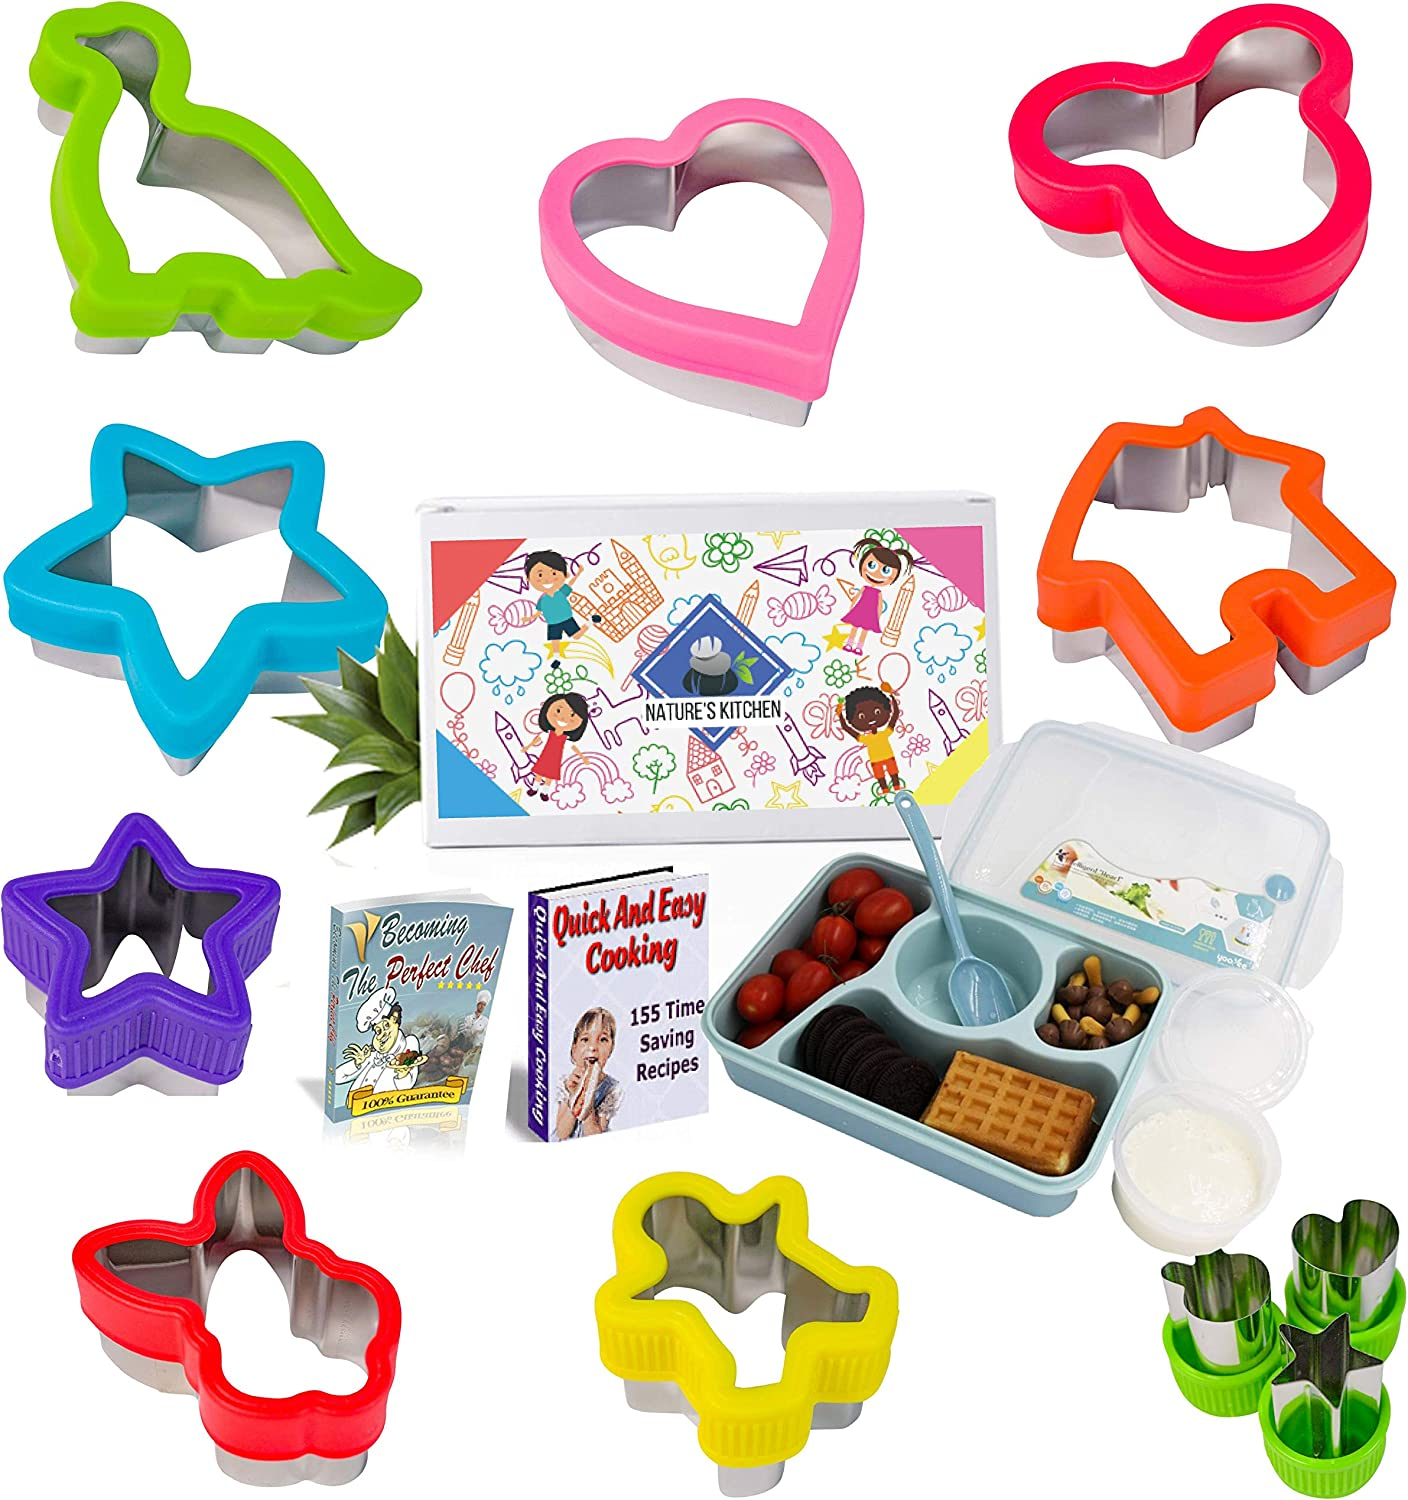 Sandwich Cutters Set for Kids Food, Cute Animal and Various Shapes - For Sandwiches, Vegetables, Cookies, Fruit, Cheese - Includes 4-in-1 Lunch Box